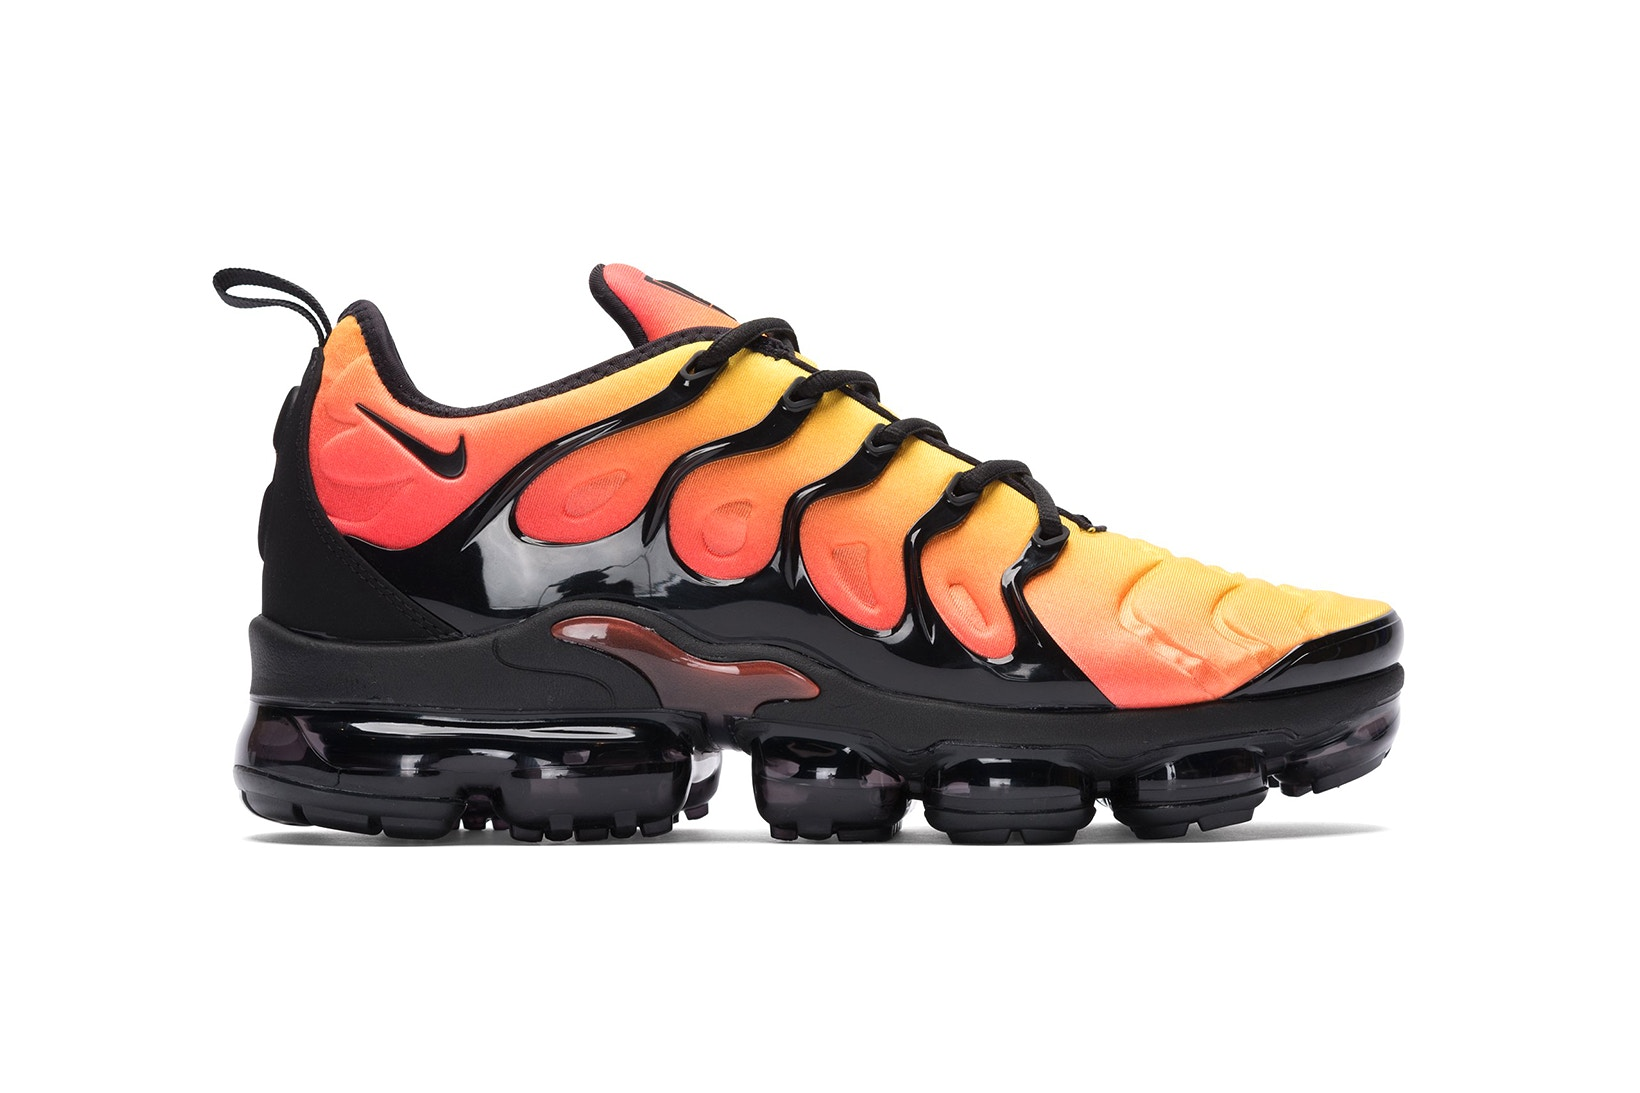 detailed look 4daa5 a7264 nike air vapormax plus 2018